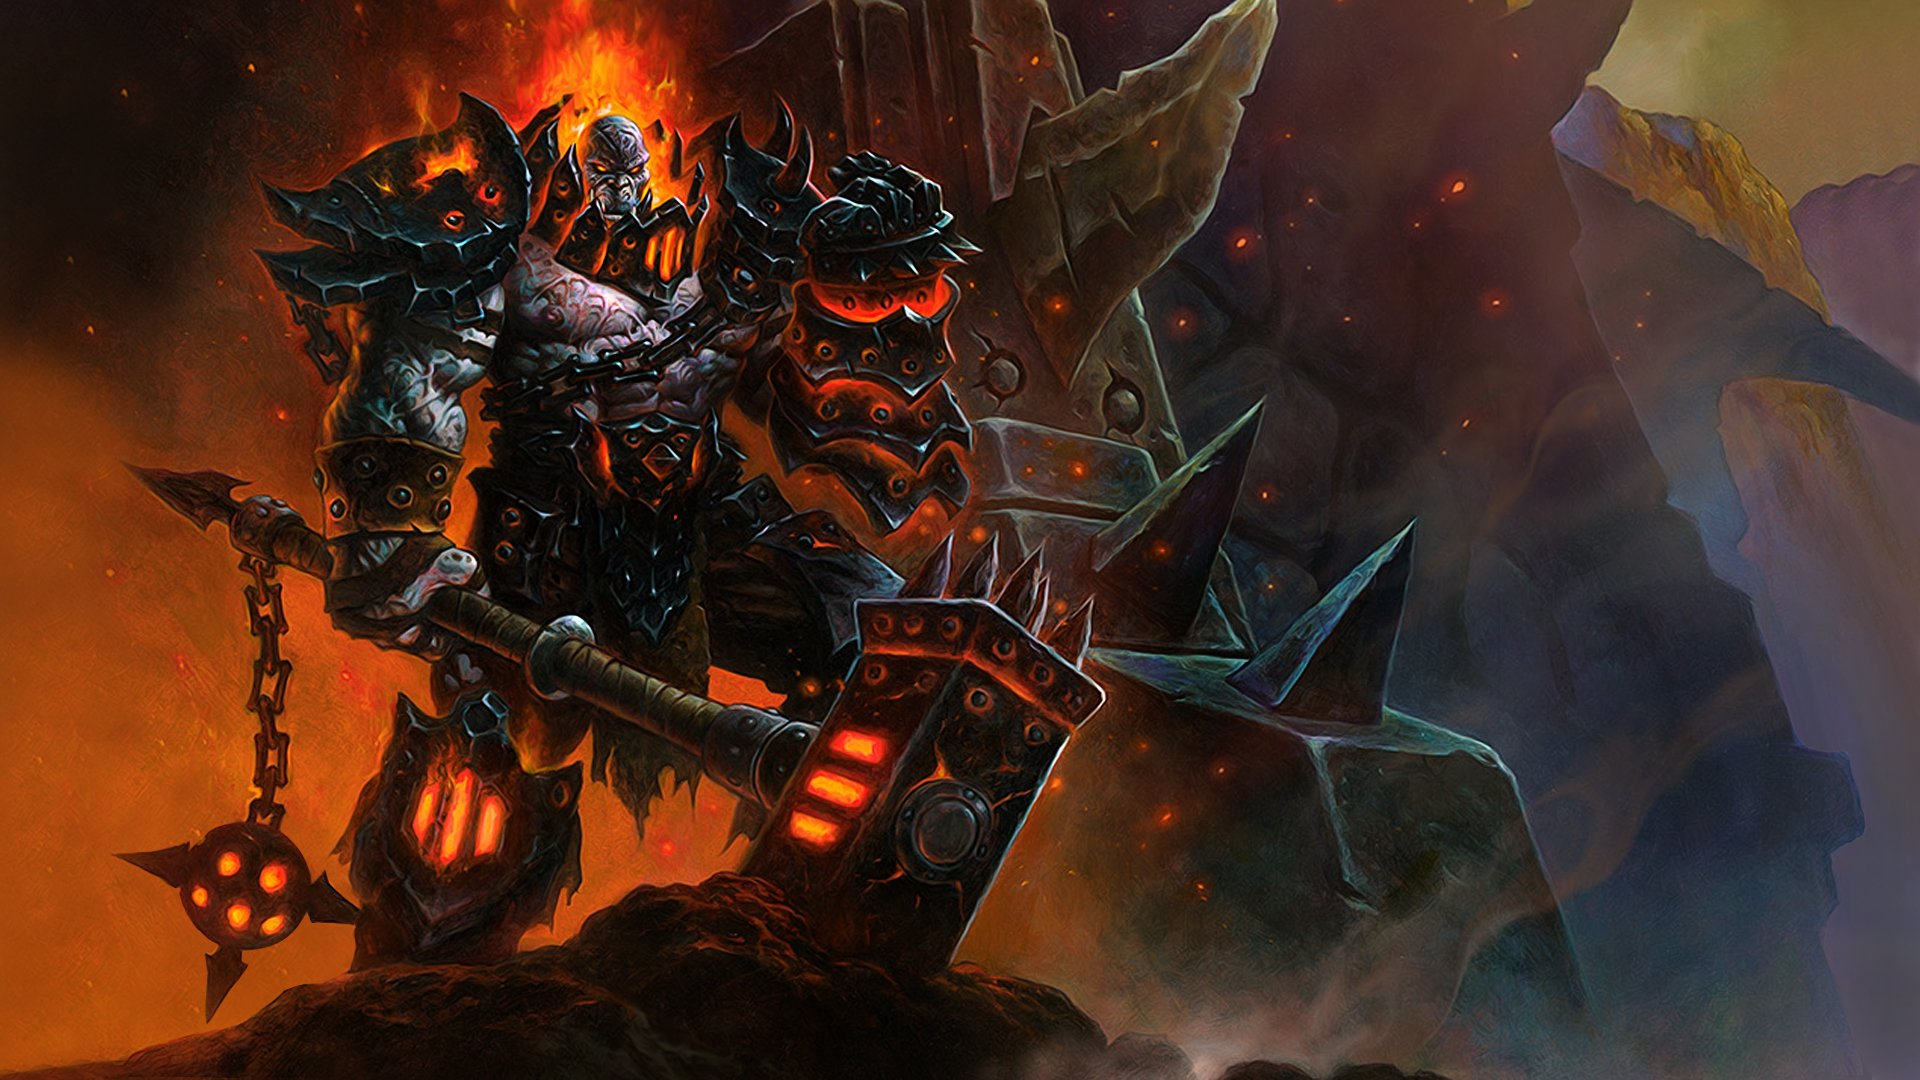 WORLD WARCRAFT warlords draenor fantasy wow wallpaper ...